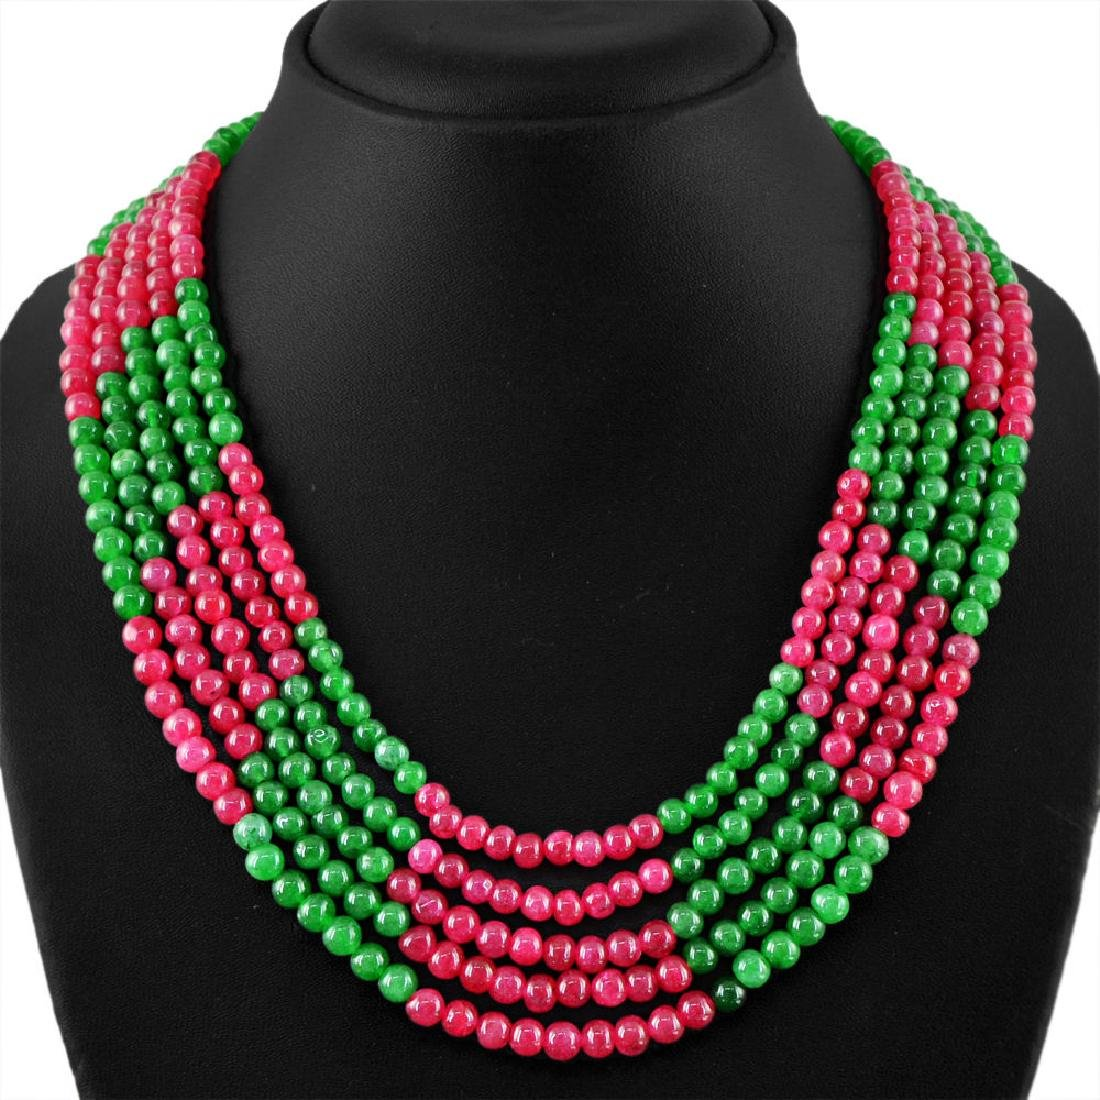 Red Ruby and Green Emerald Beads Necklace